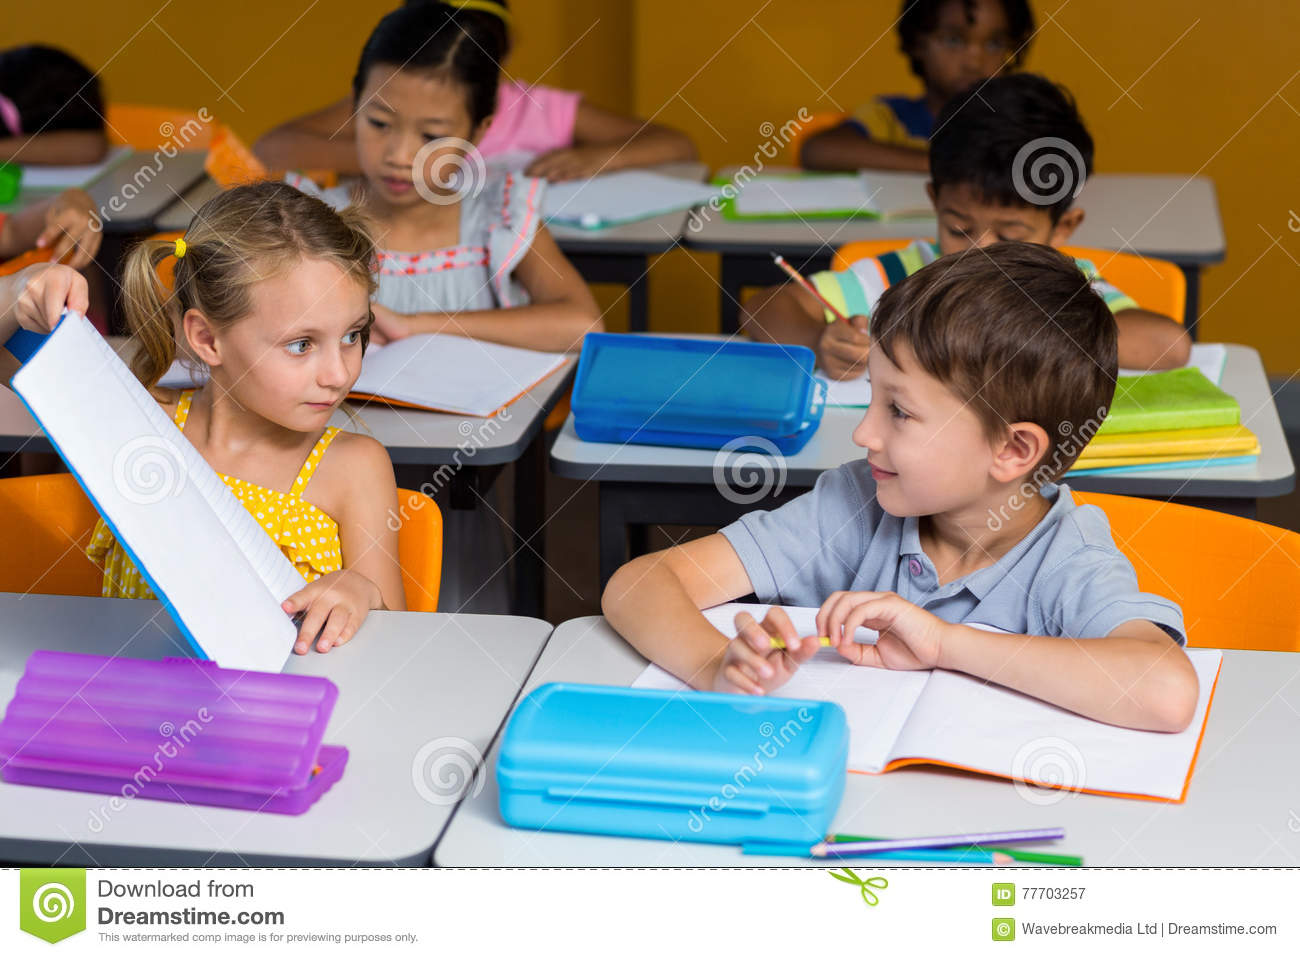 Girl Showing Book To Classmate Stock Image - Image: 77703257